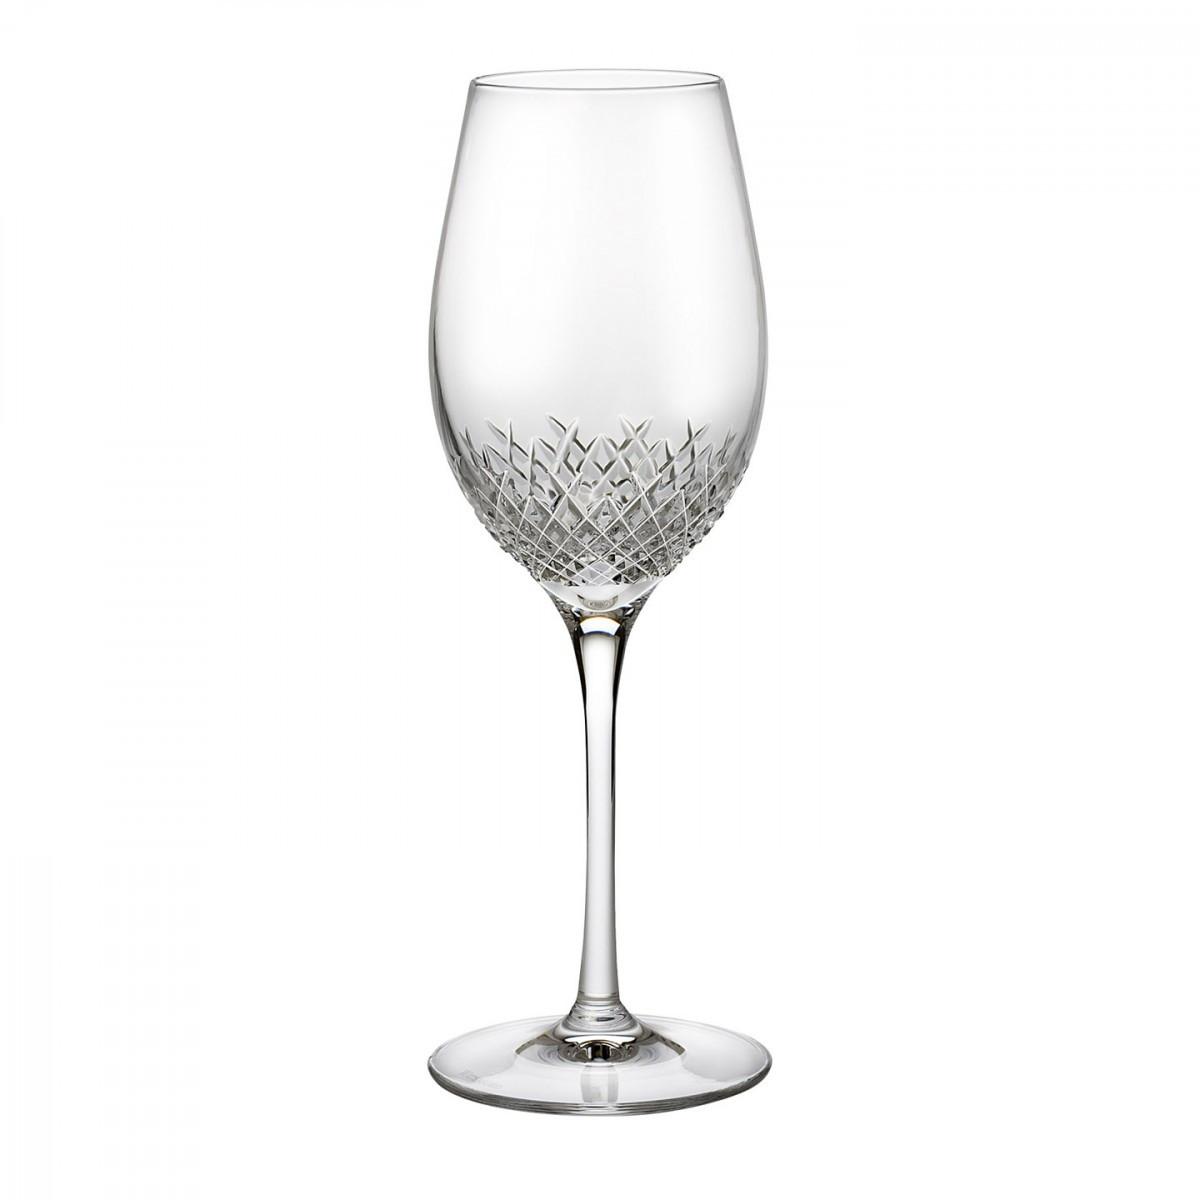 Retired Waterford Crystal Vase Patterns Of Alana Essence White Wine Discontinued Waterford Us Intended for Alana Essence White Wine Discontinued